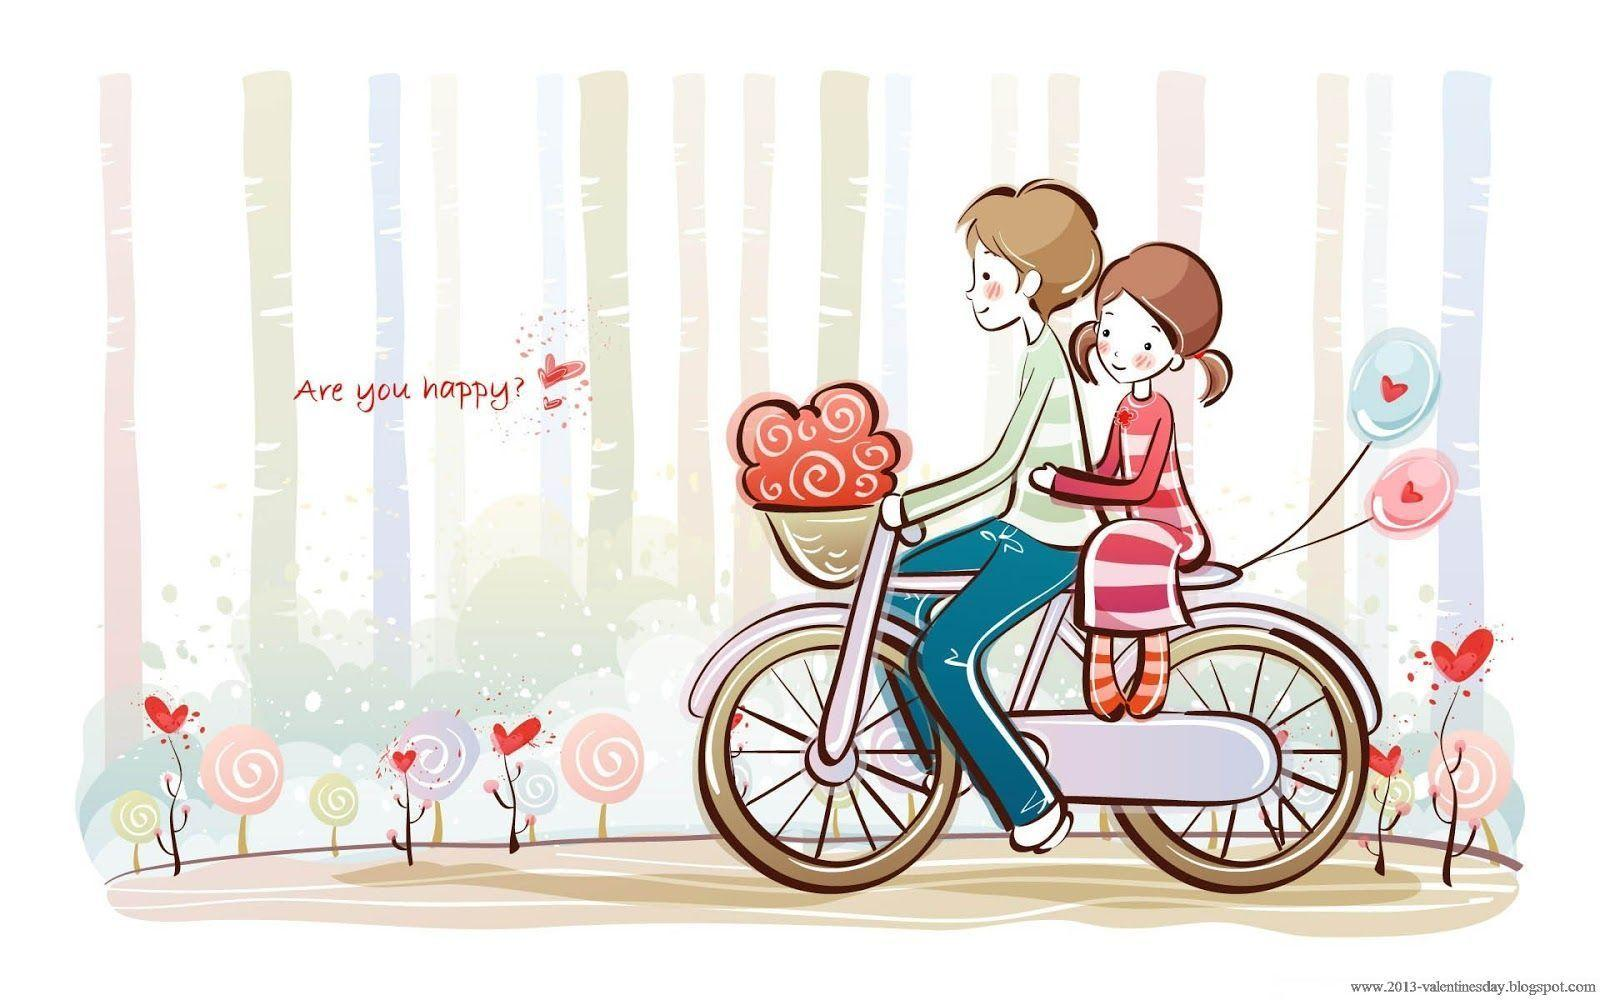 Love Wallpaper cartoon Hd : Love cartoon Wallpapers - Wallpaper cave